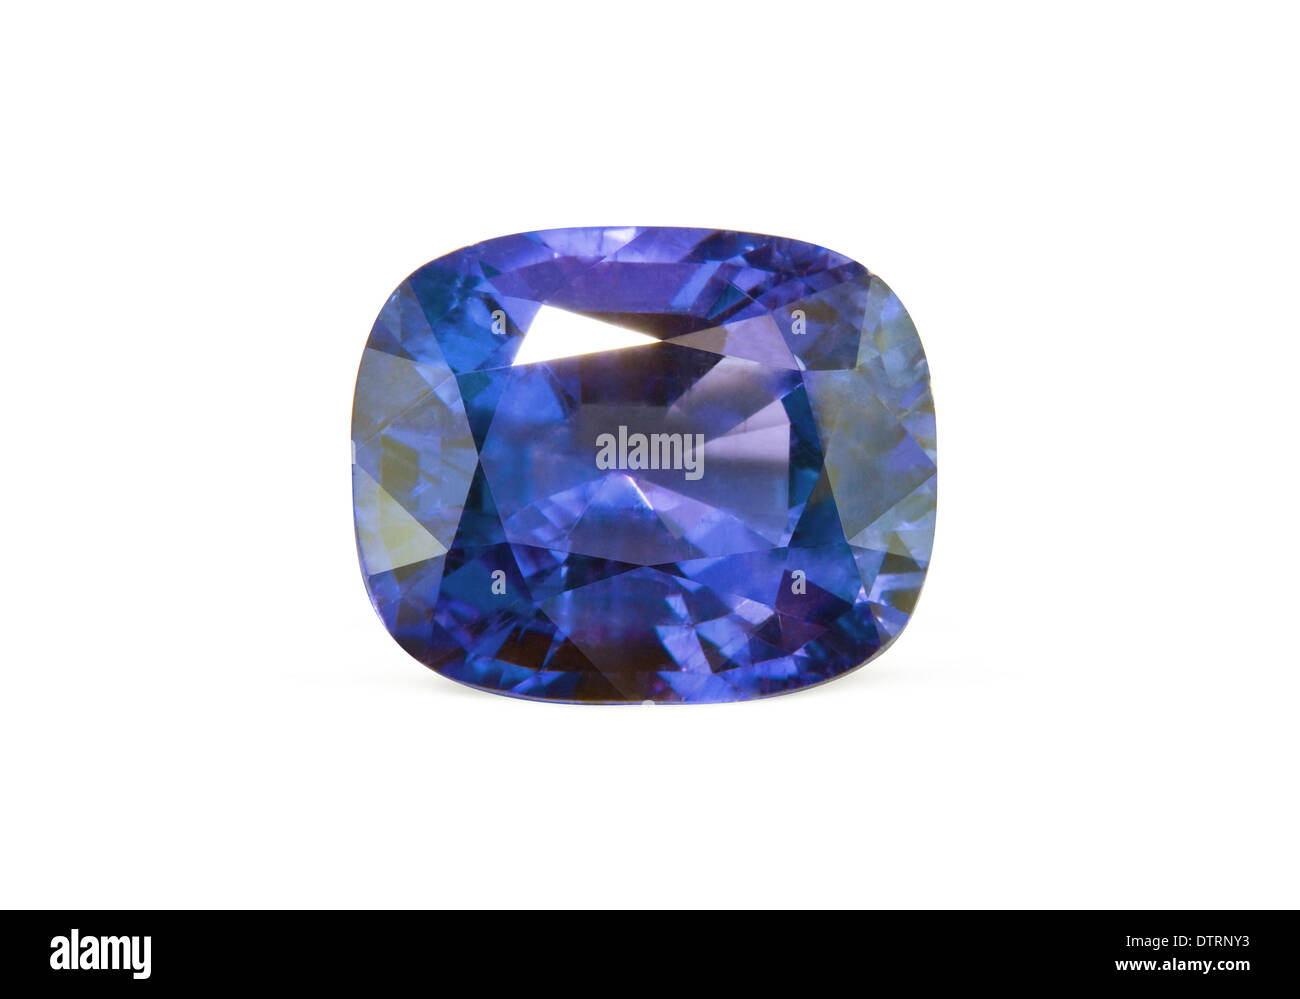 gems gemstones jeffery davies tanzanite gia